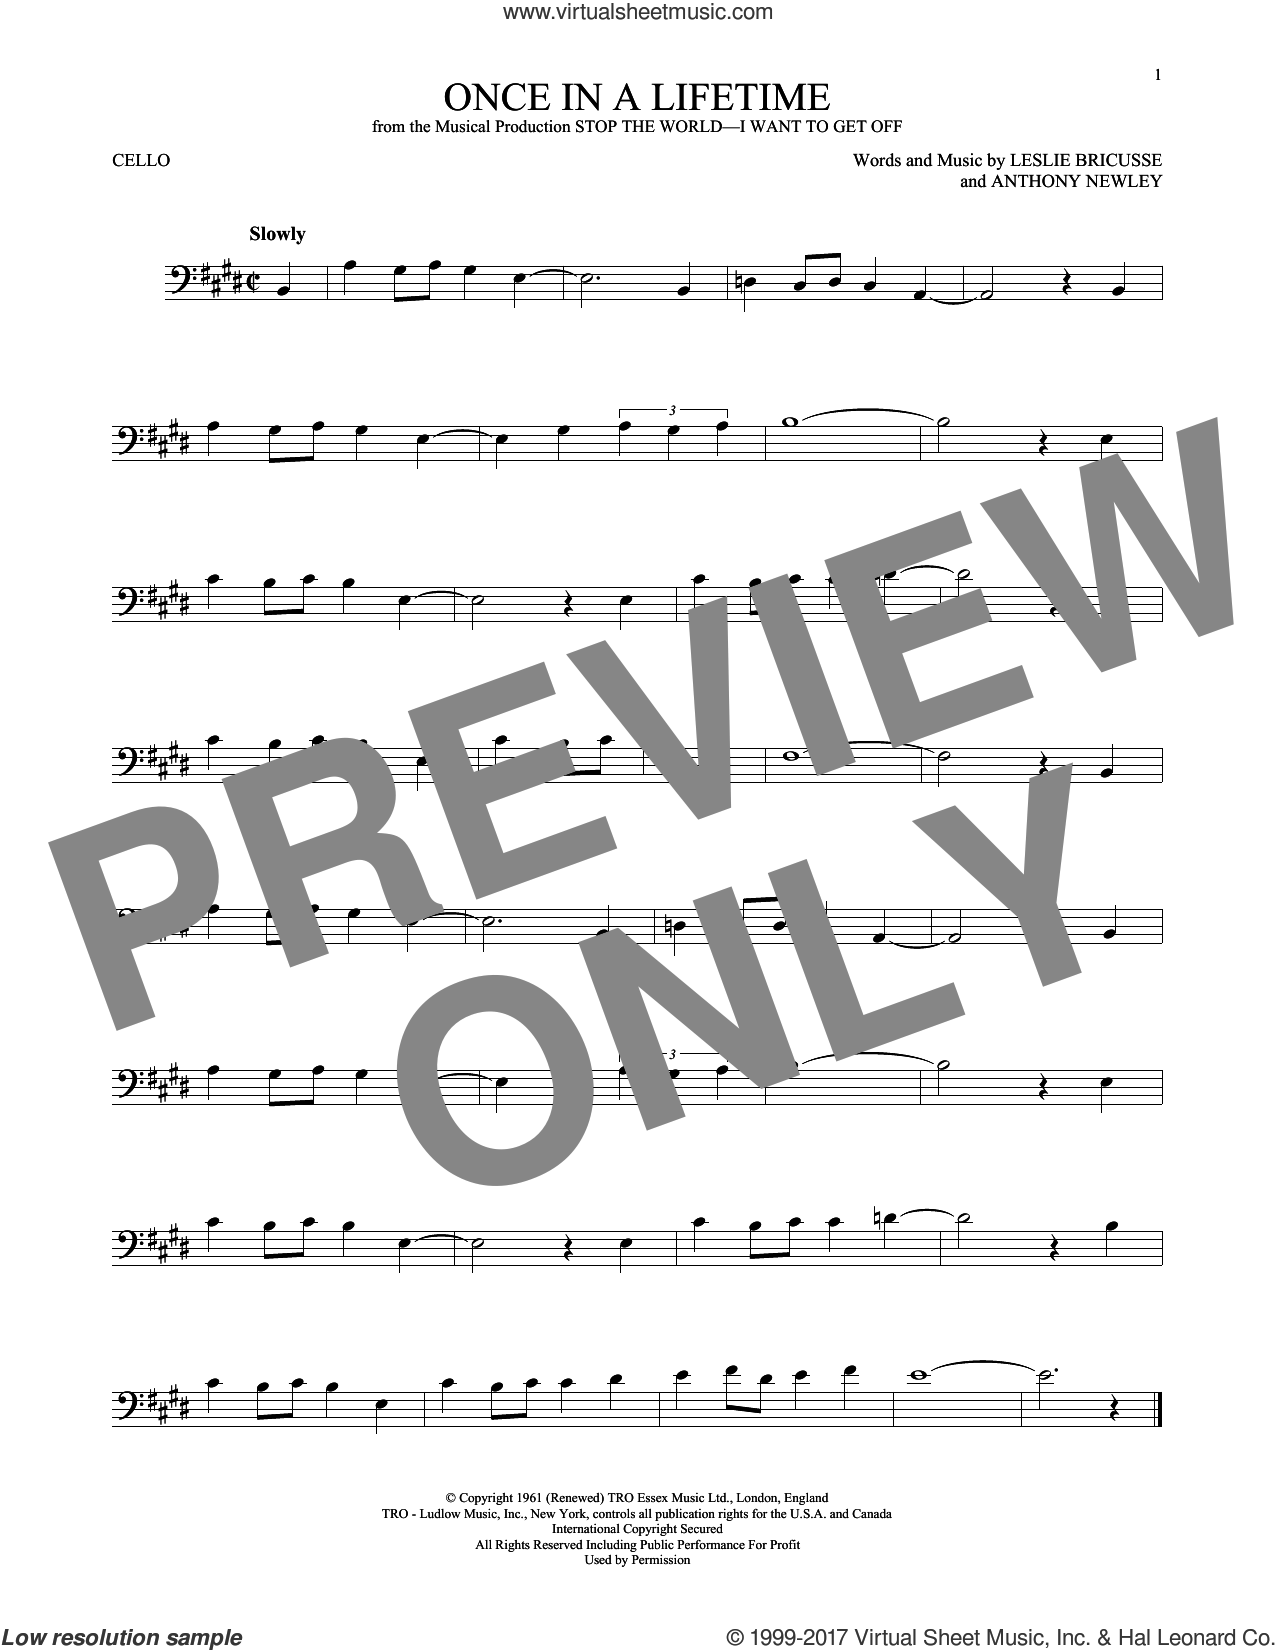 Once In A Lifetime sheet music for cello solo by Leslie Bricusse and Anthony Newley, intermediate skill level